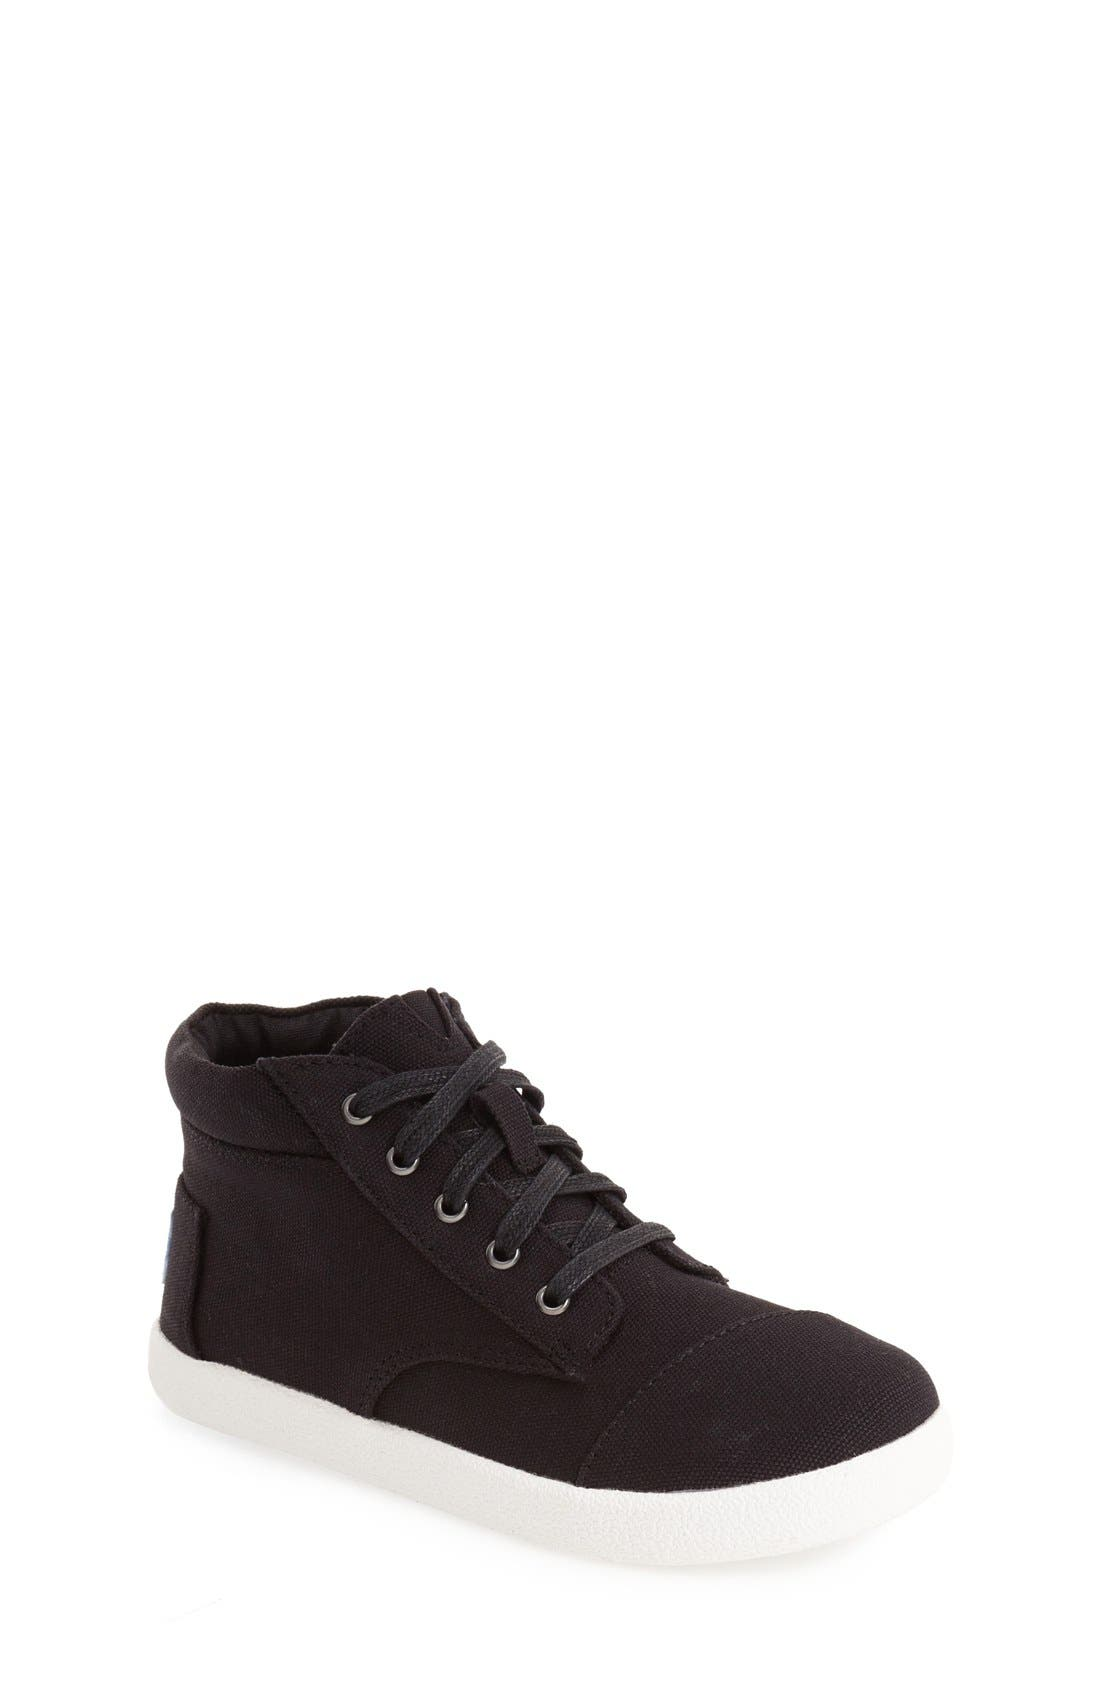 TOMS Paseo High Top Sneaker